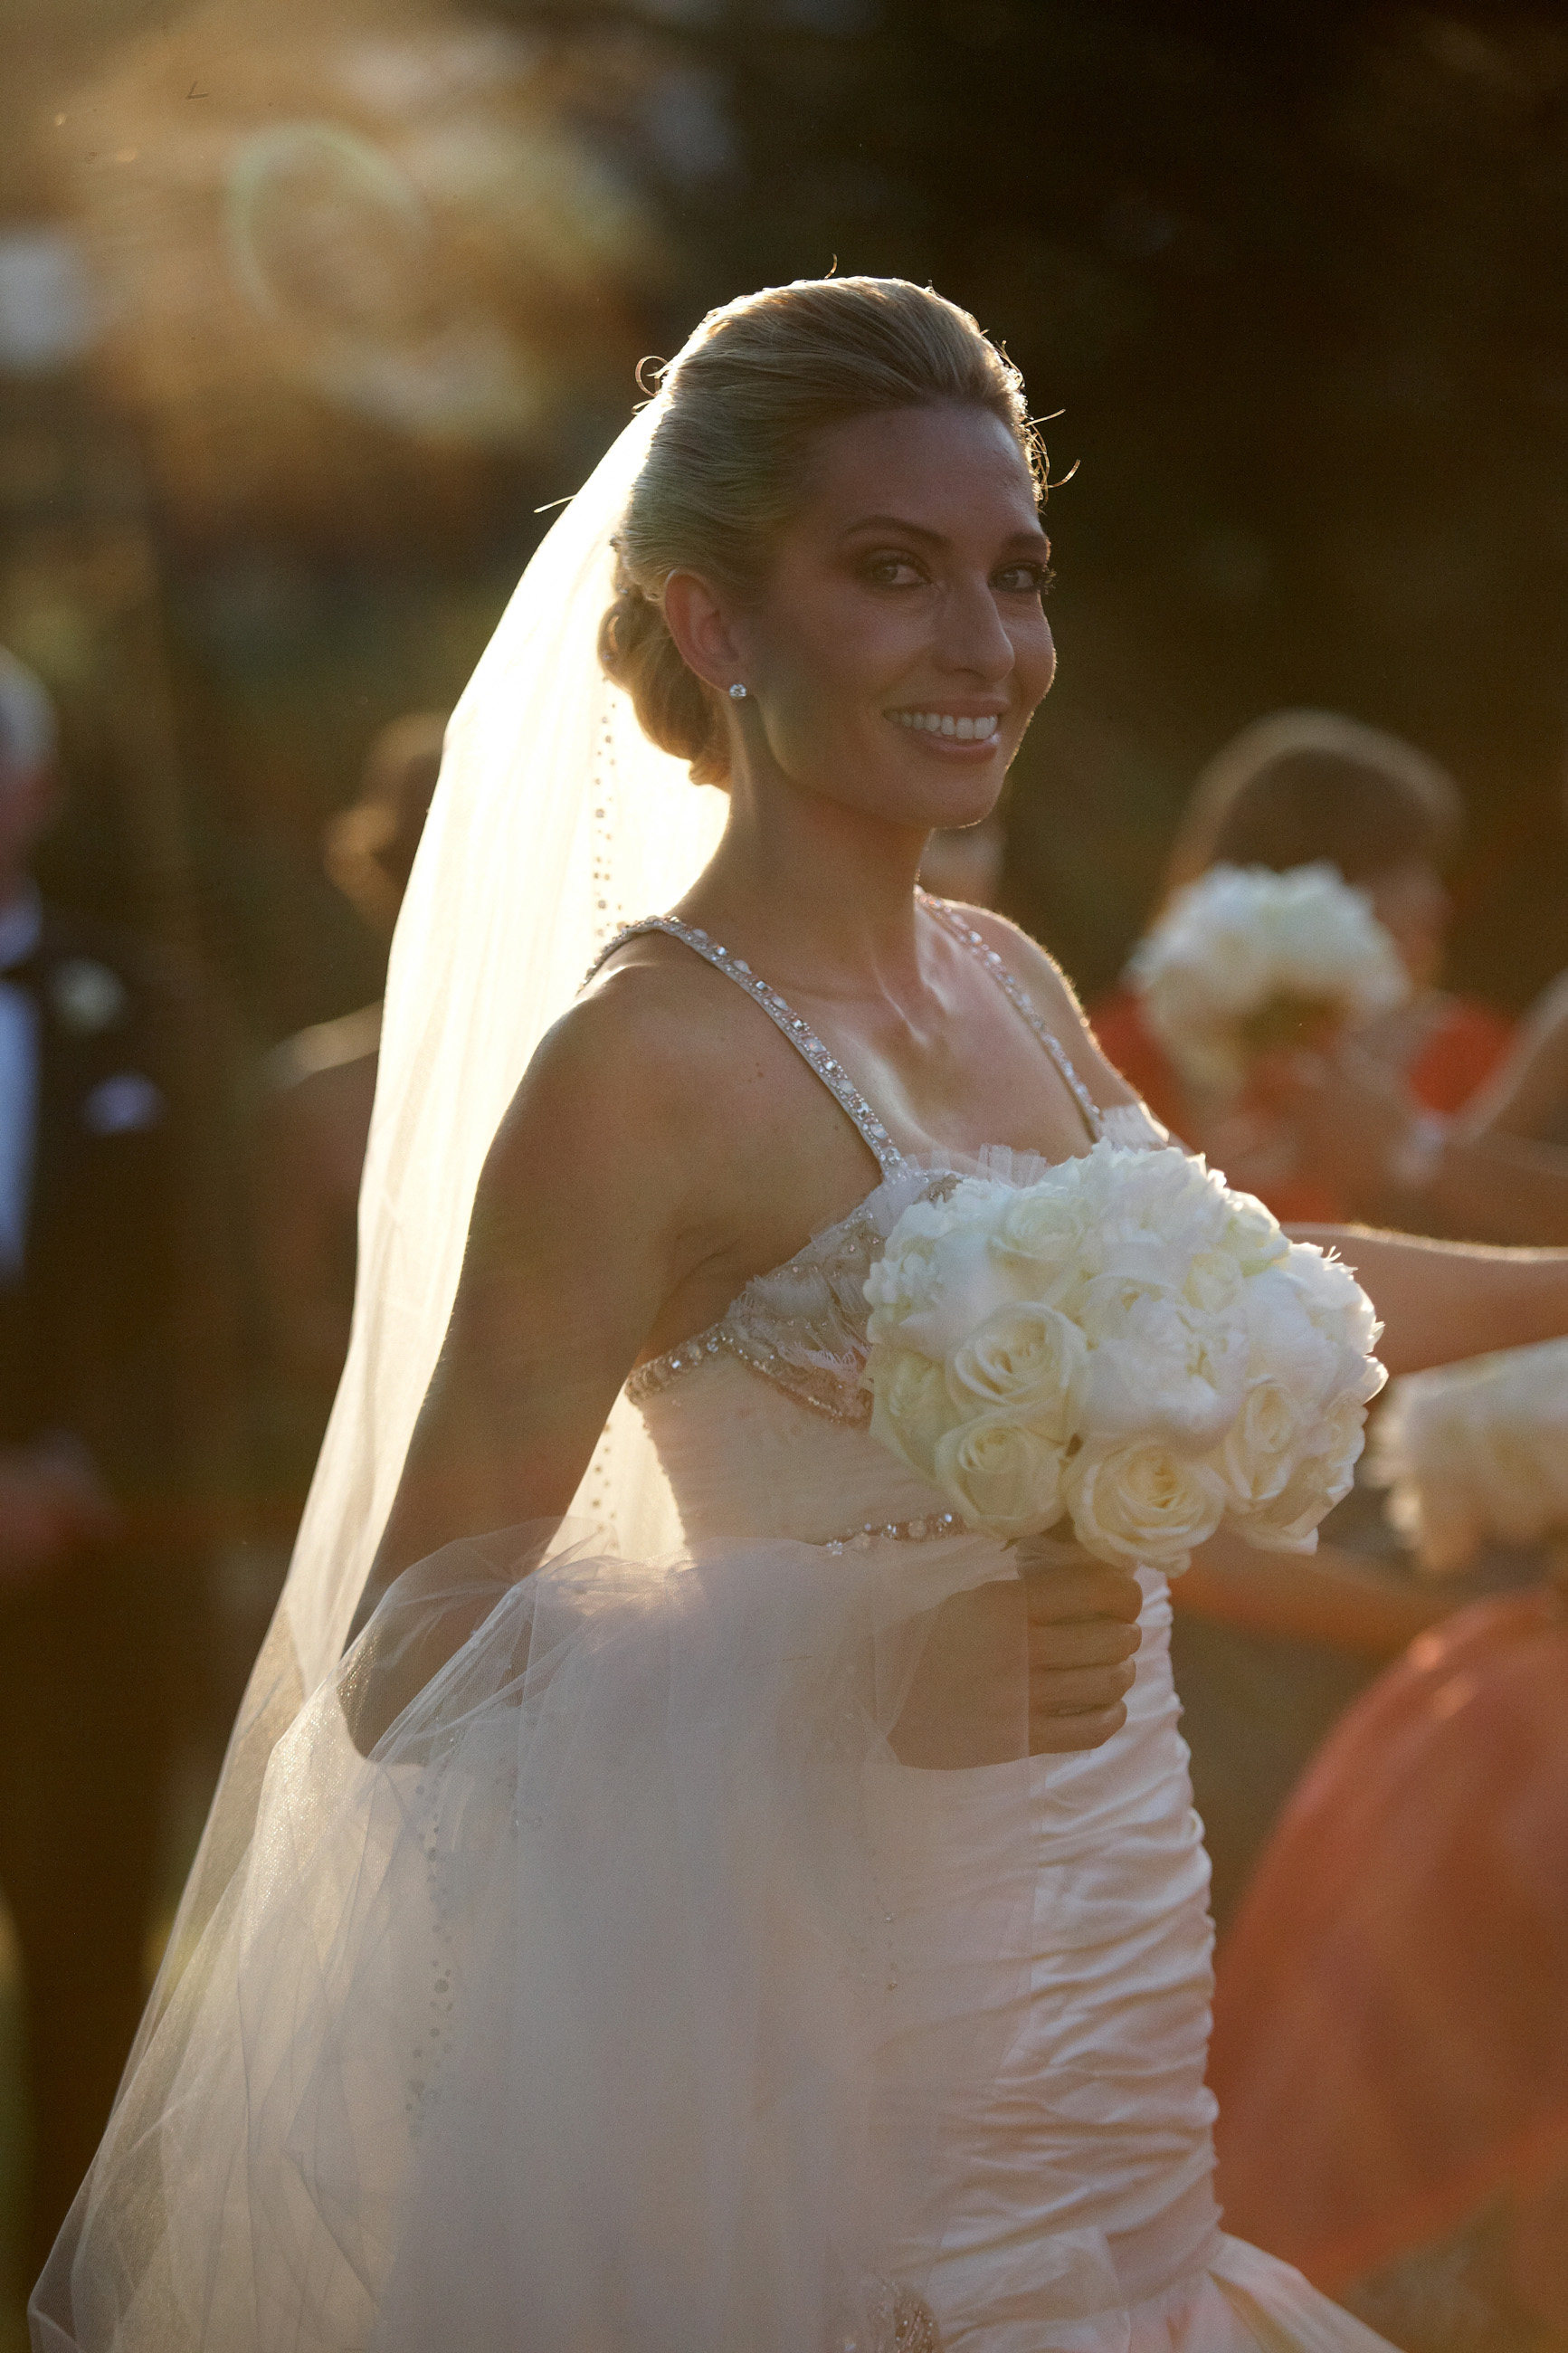 Bride Details - Ravello, Italy - Summer Wedding - Julian Leaver Events